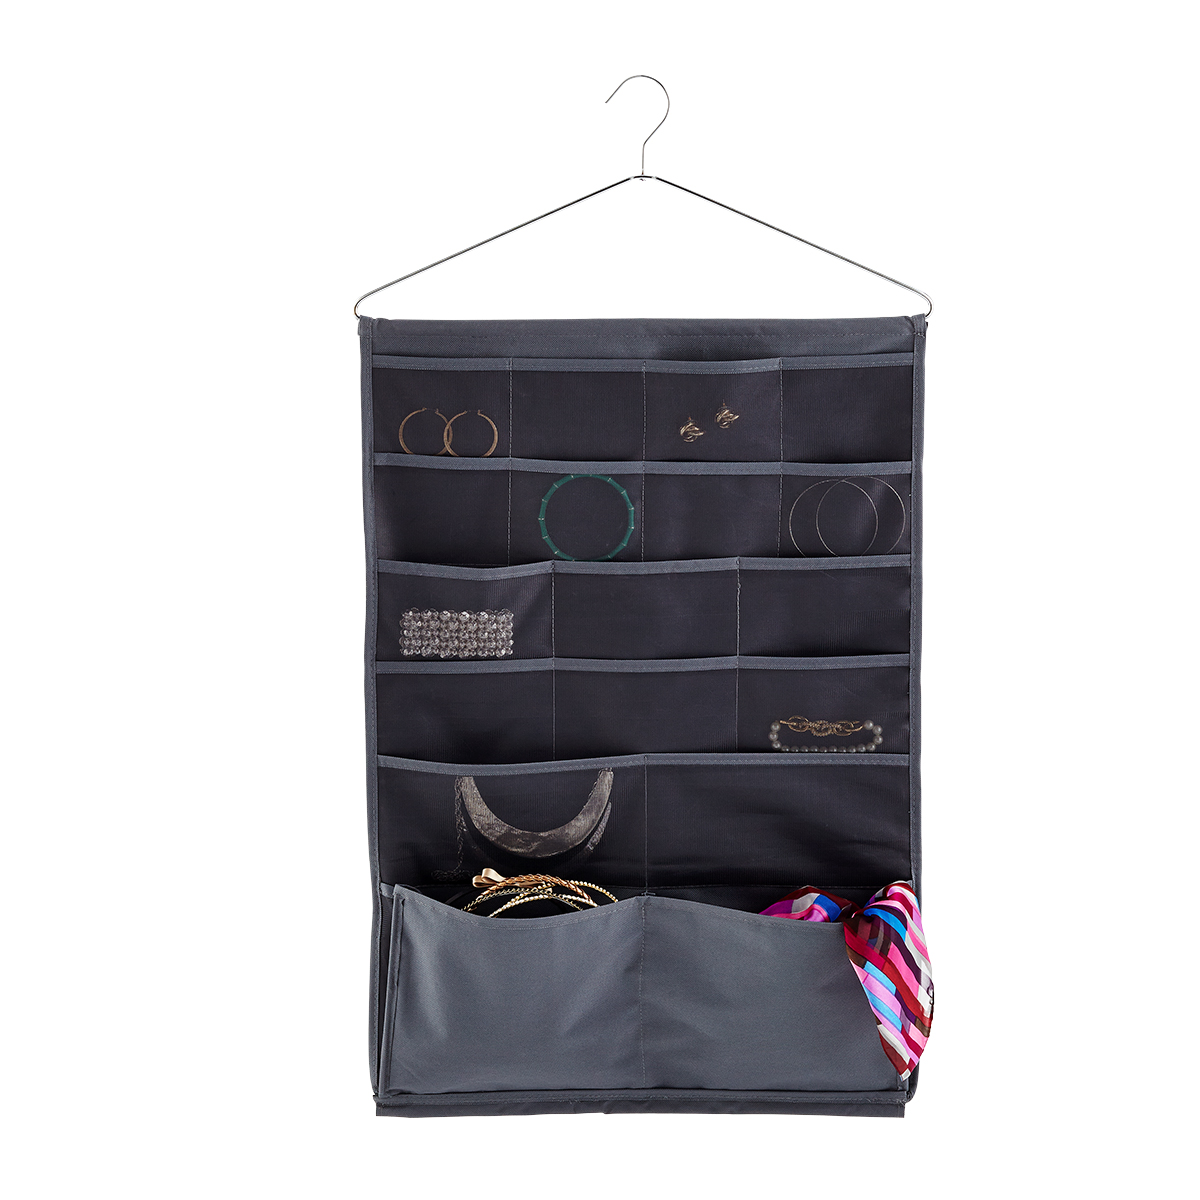 Jewelry Pouches Jewelry Bags Jewelry Storage Solutions The